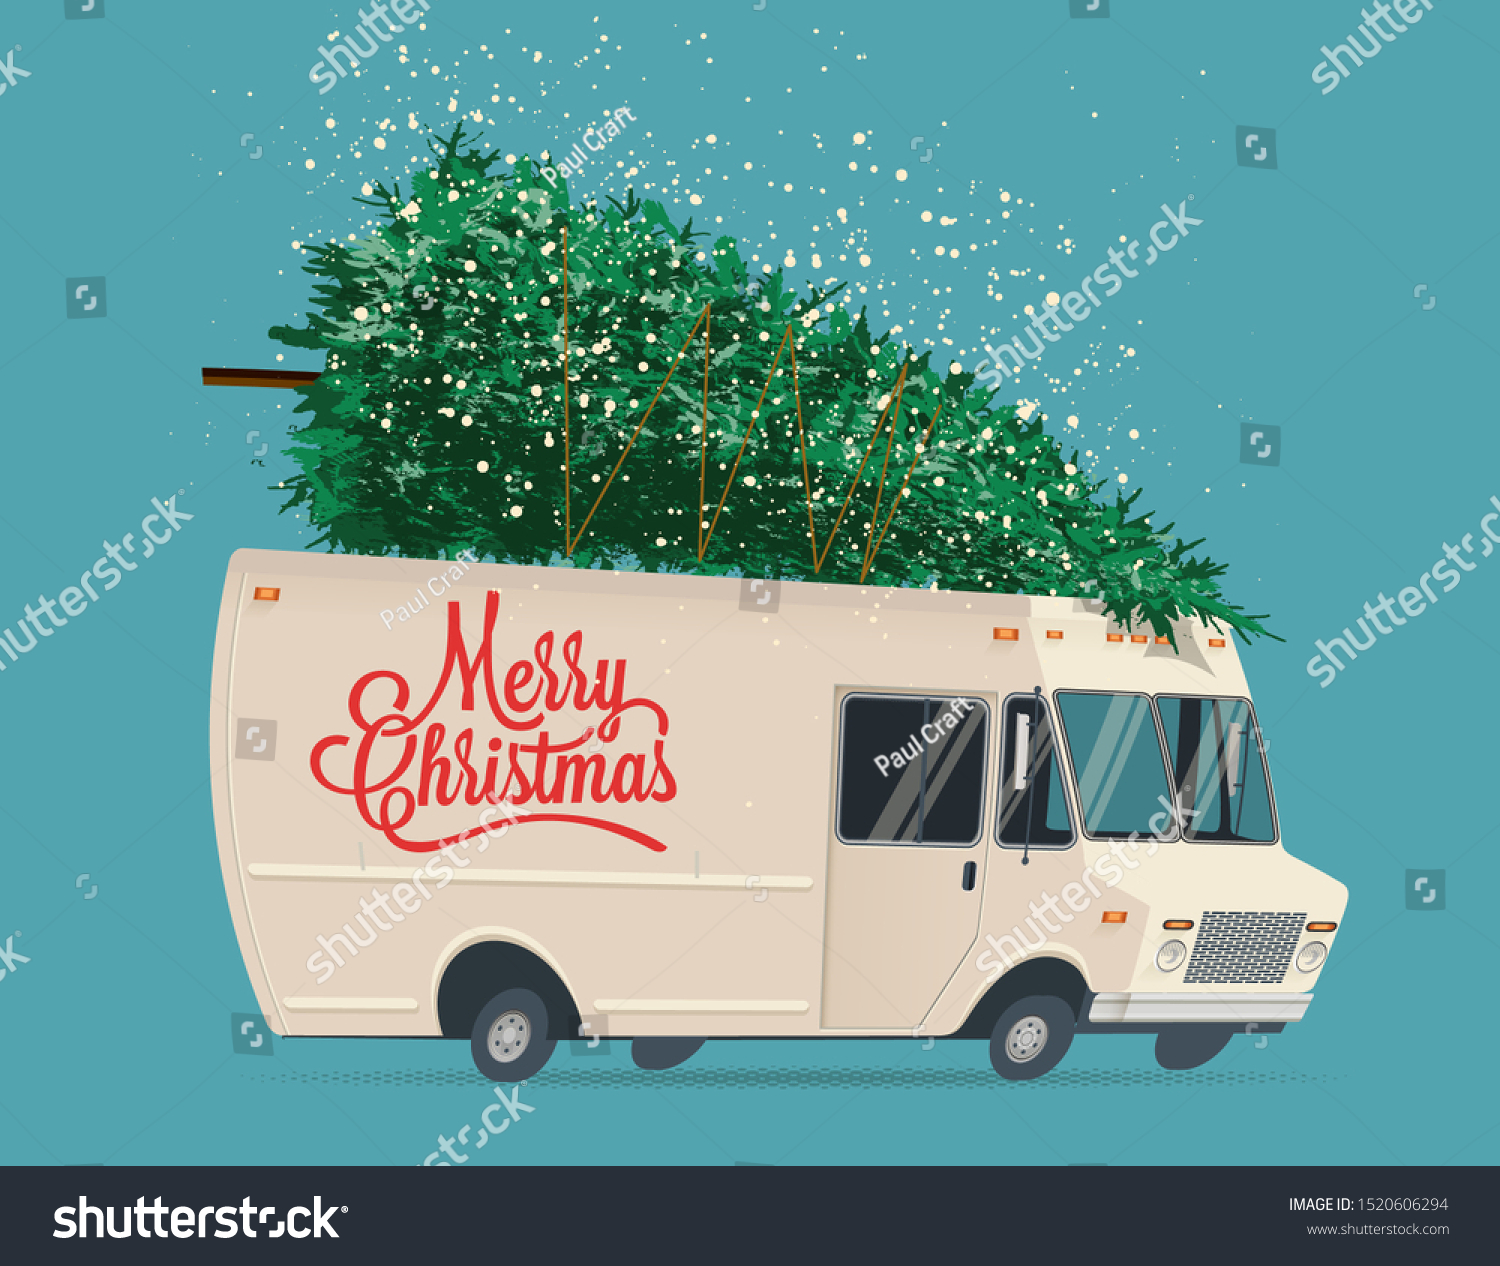 Vintage Cartoon Delivery Truck Christmas Tree Stock Vector Royalty Free 1520606294 To get more templates about posters,flyers,brochures cartoon flat tree trunk background design. https www shutterstock com image vector vintage cartoon delivery truck christmas tree 1520606294